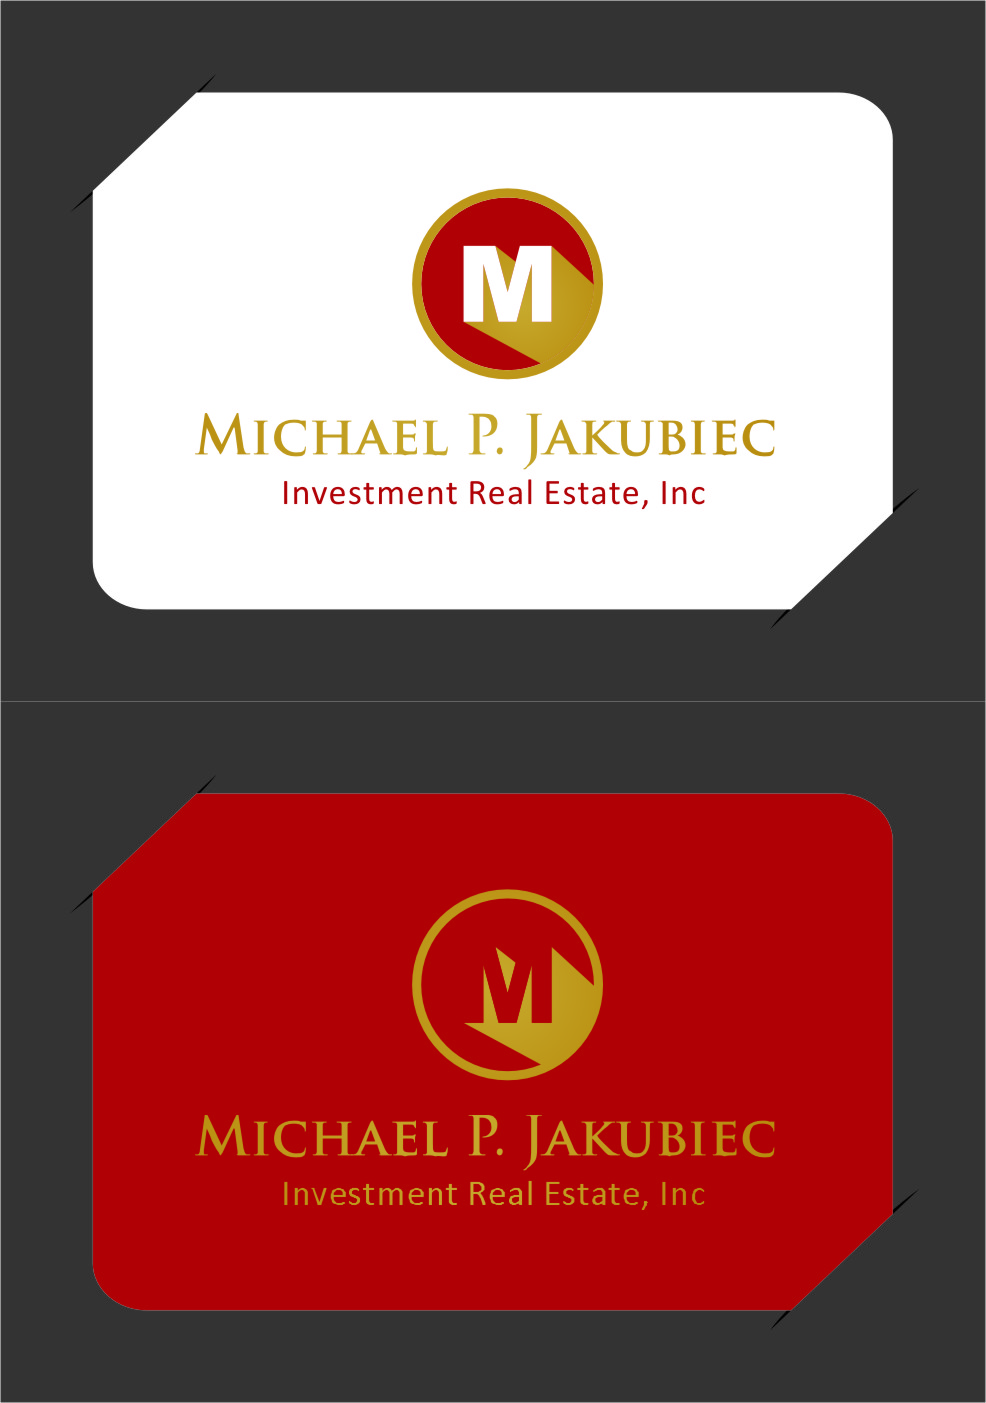 Logo Design by Ngepet_art - Entry No. 114 in the Logo Design Contest New Logo Design for Michael P. Jakubiec Investment Real Estate, Inc..